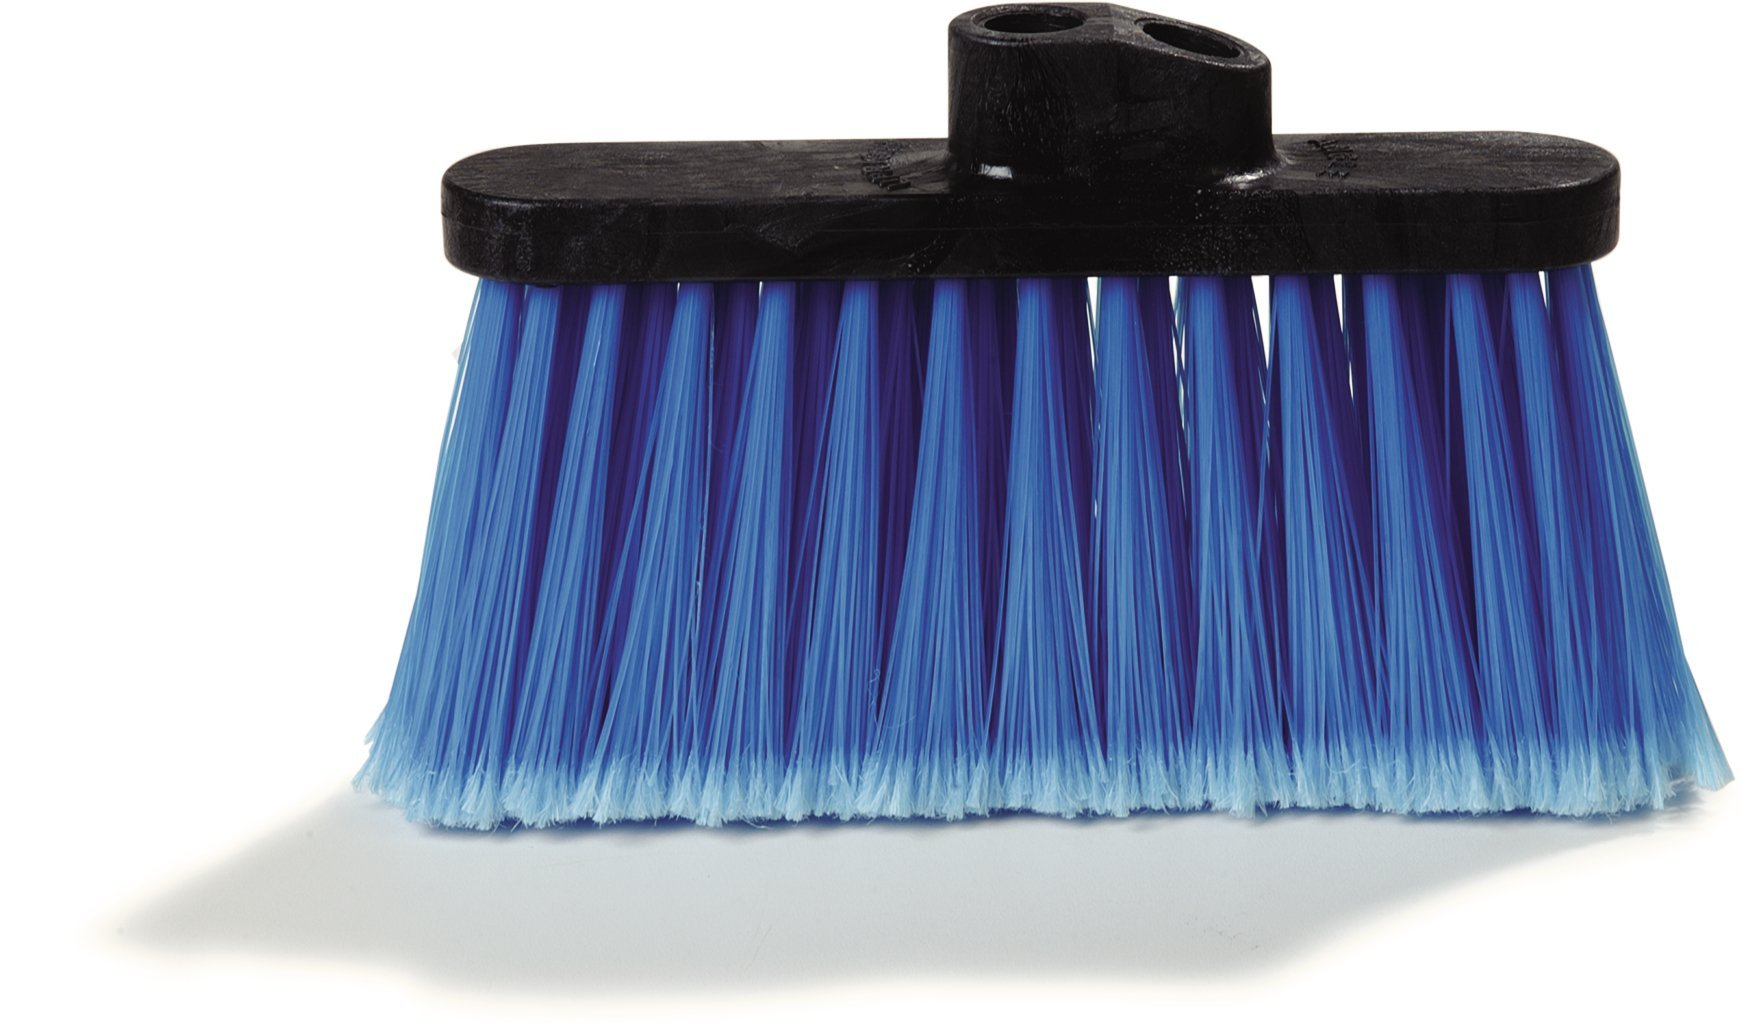 Carlisle 3685314 Duo-Sweep Light Industrial Broom Head, 4'' Long Blue Synthetic Bristles, 13'' W x 7'' H Overall (Case of 12) by Carlisle (Image #3)